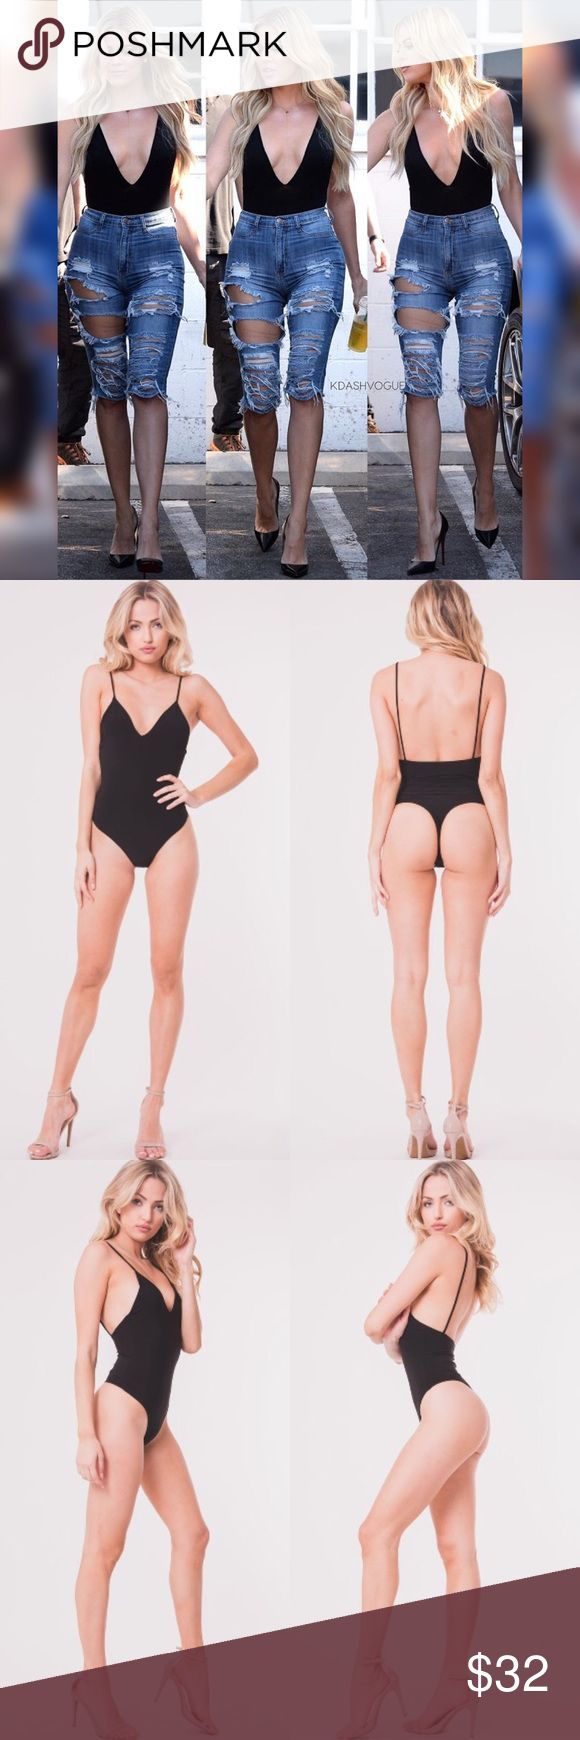 """🆕 Khloe Bodysuit 💋 Get Your Khloe K On With This Must Have Sexy Bodysuit 😍  -SOLID -SPAGHETTI STRAPS -DOUBLE LAYERED -SNAP BOTTOM -OPEN BACK  96% POLYESTER, 4% SPANDEX  Model Measurements HEIGHT 5`7"""" WAIST 24"""" BUST 34""""B Jubis Boutique Tops"""